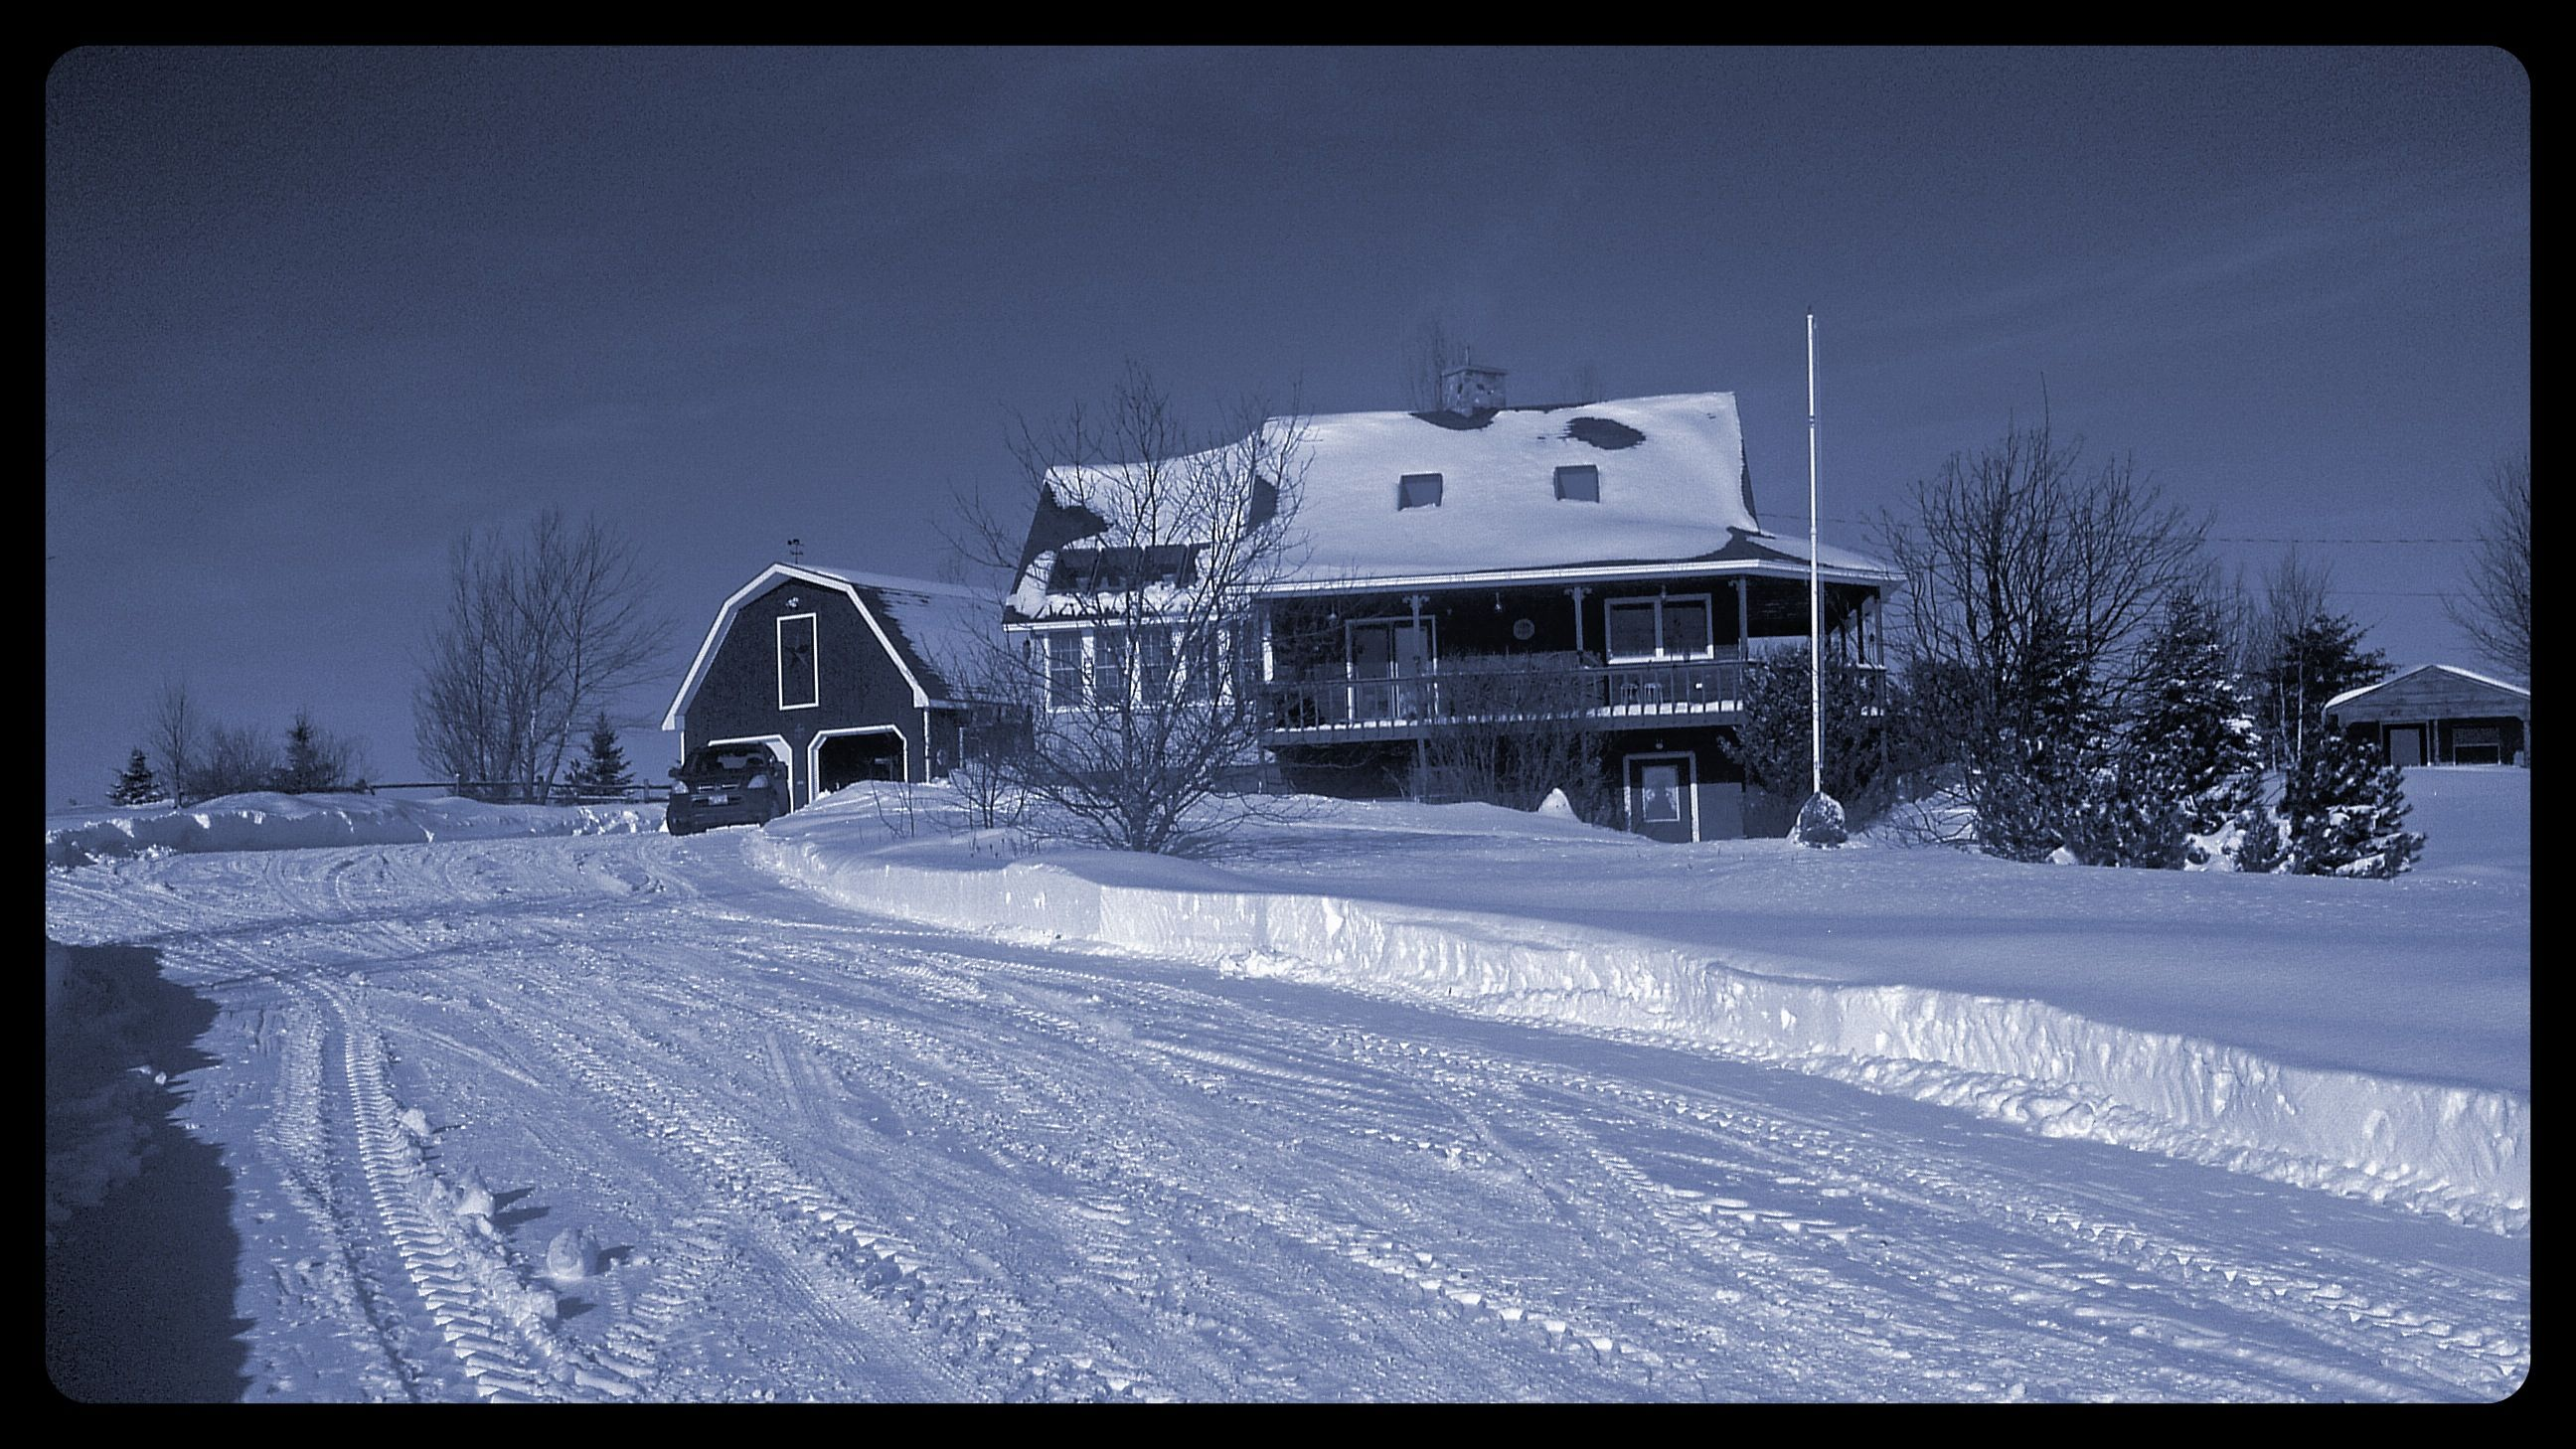 Near Presque Isle, Me. Mapelton, Maine (With images